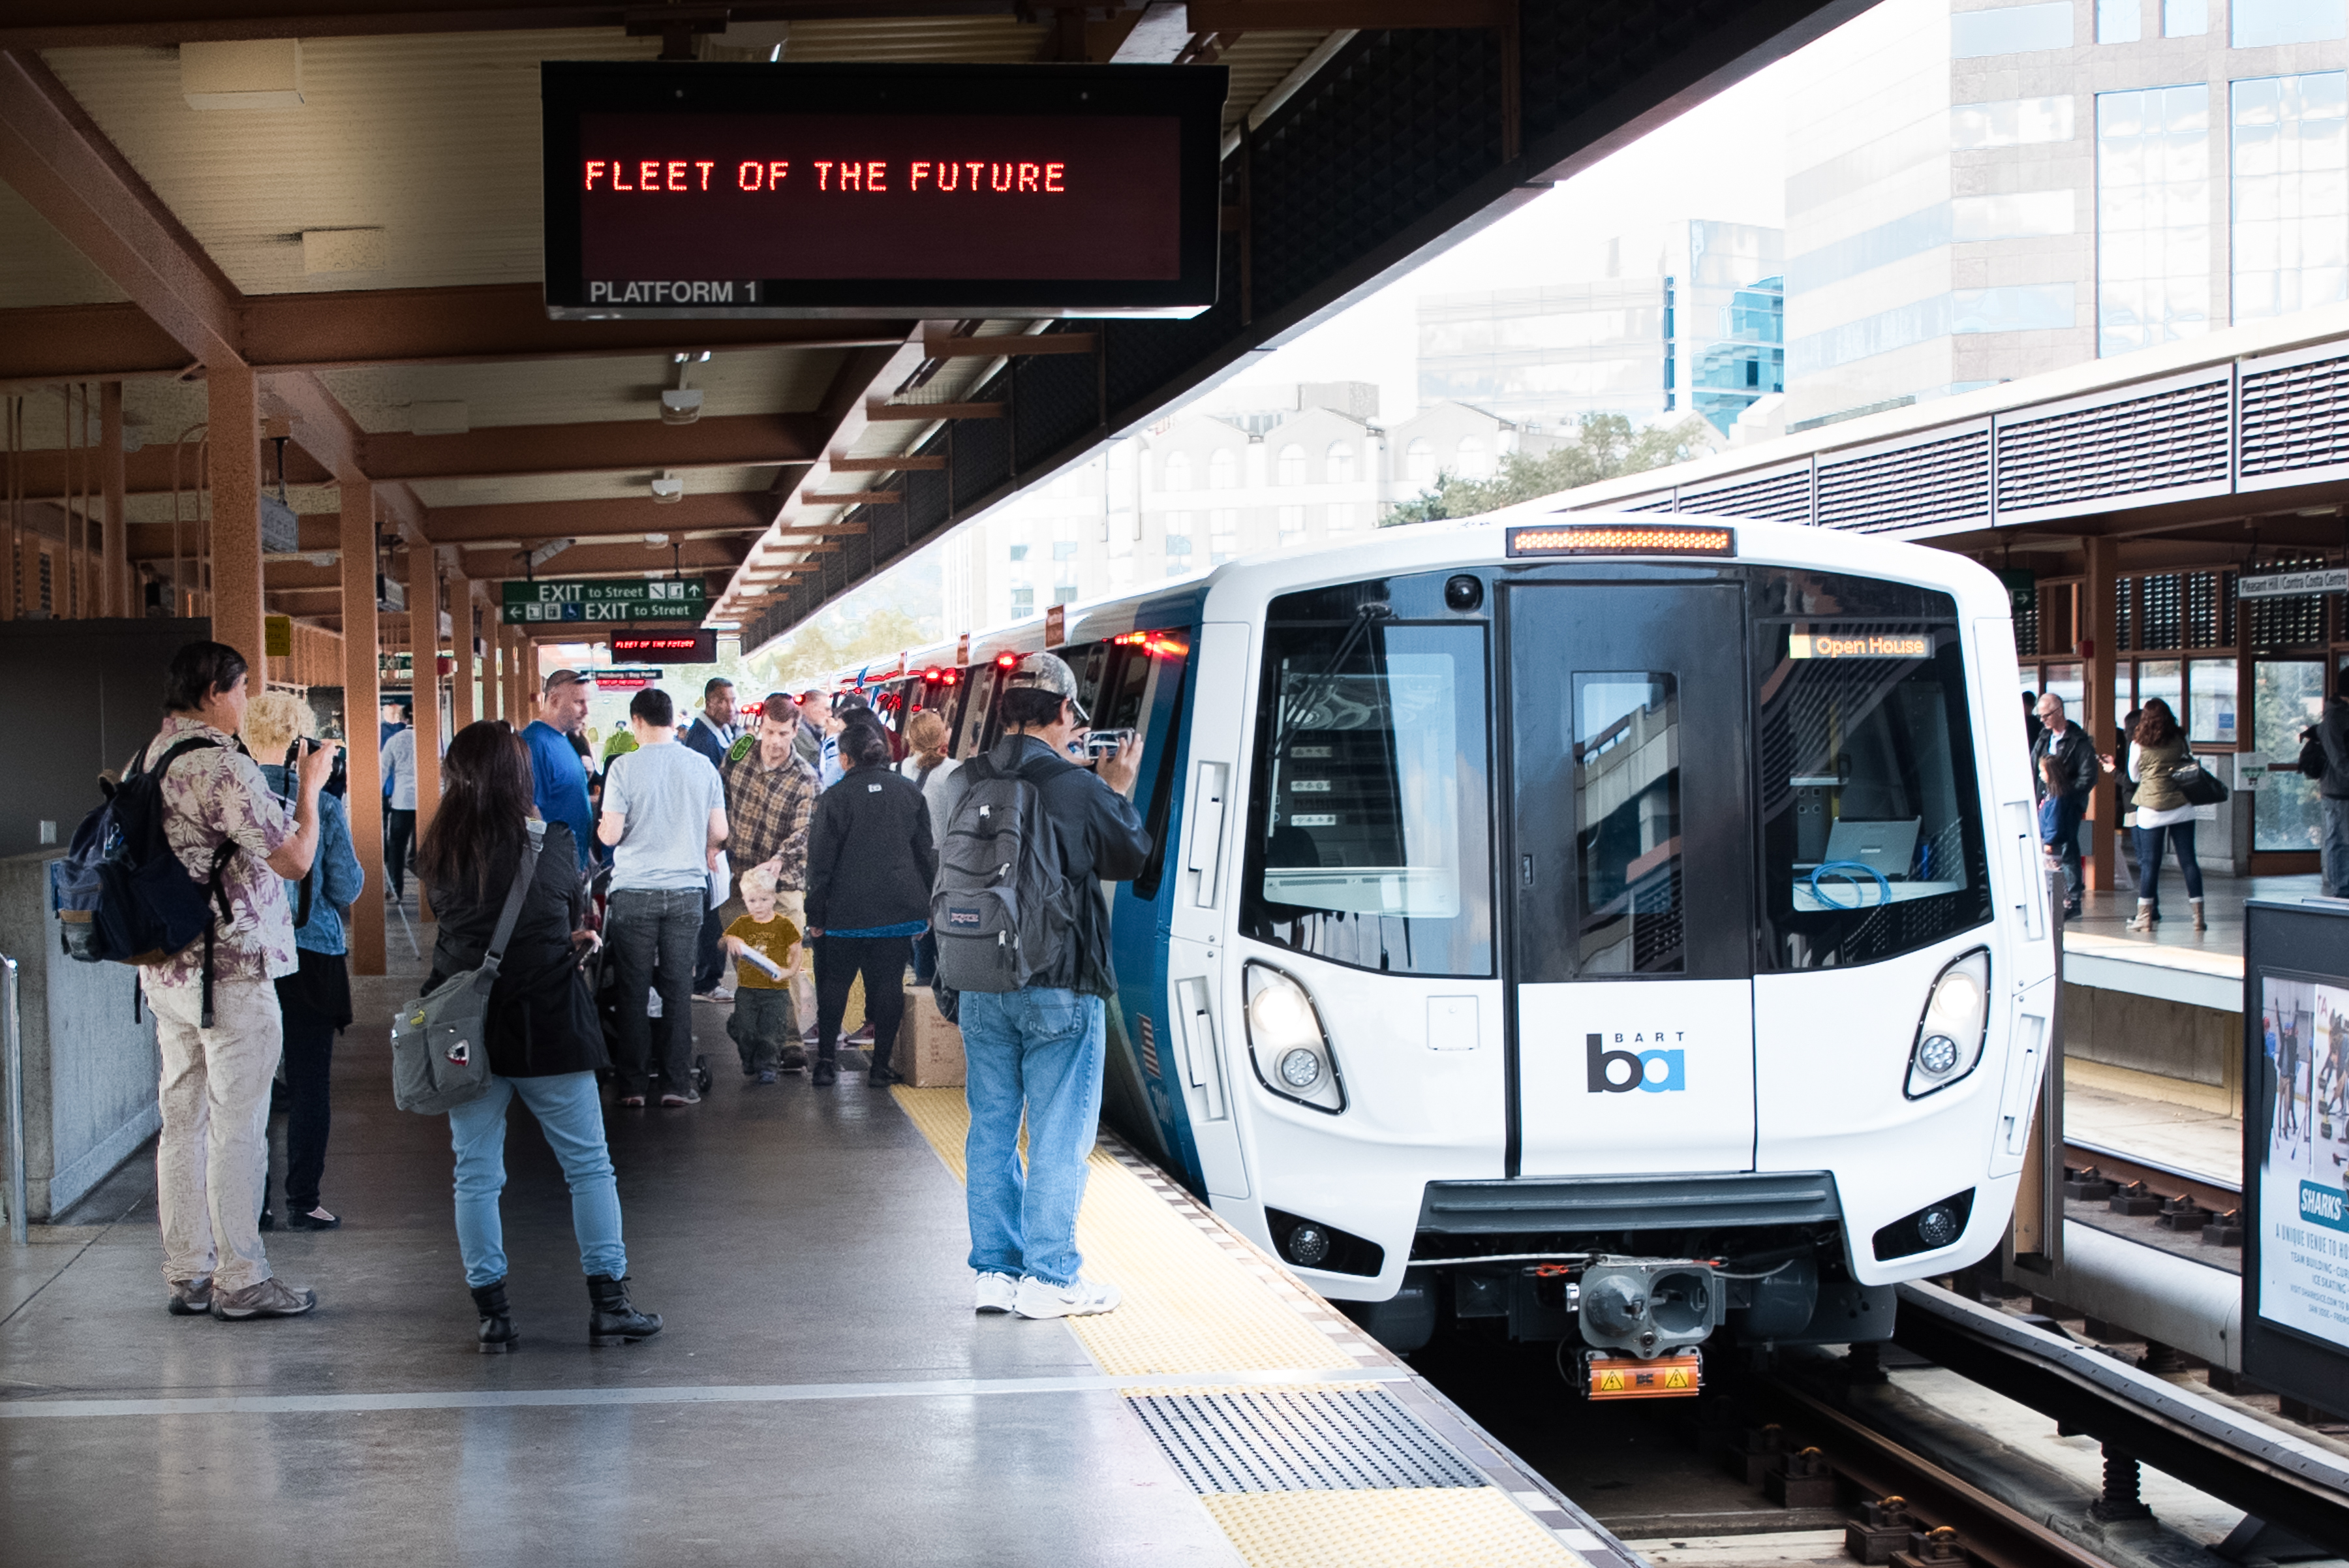 Thousands Attend Tours Of Fleet Of The Future Trains